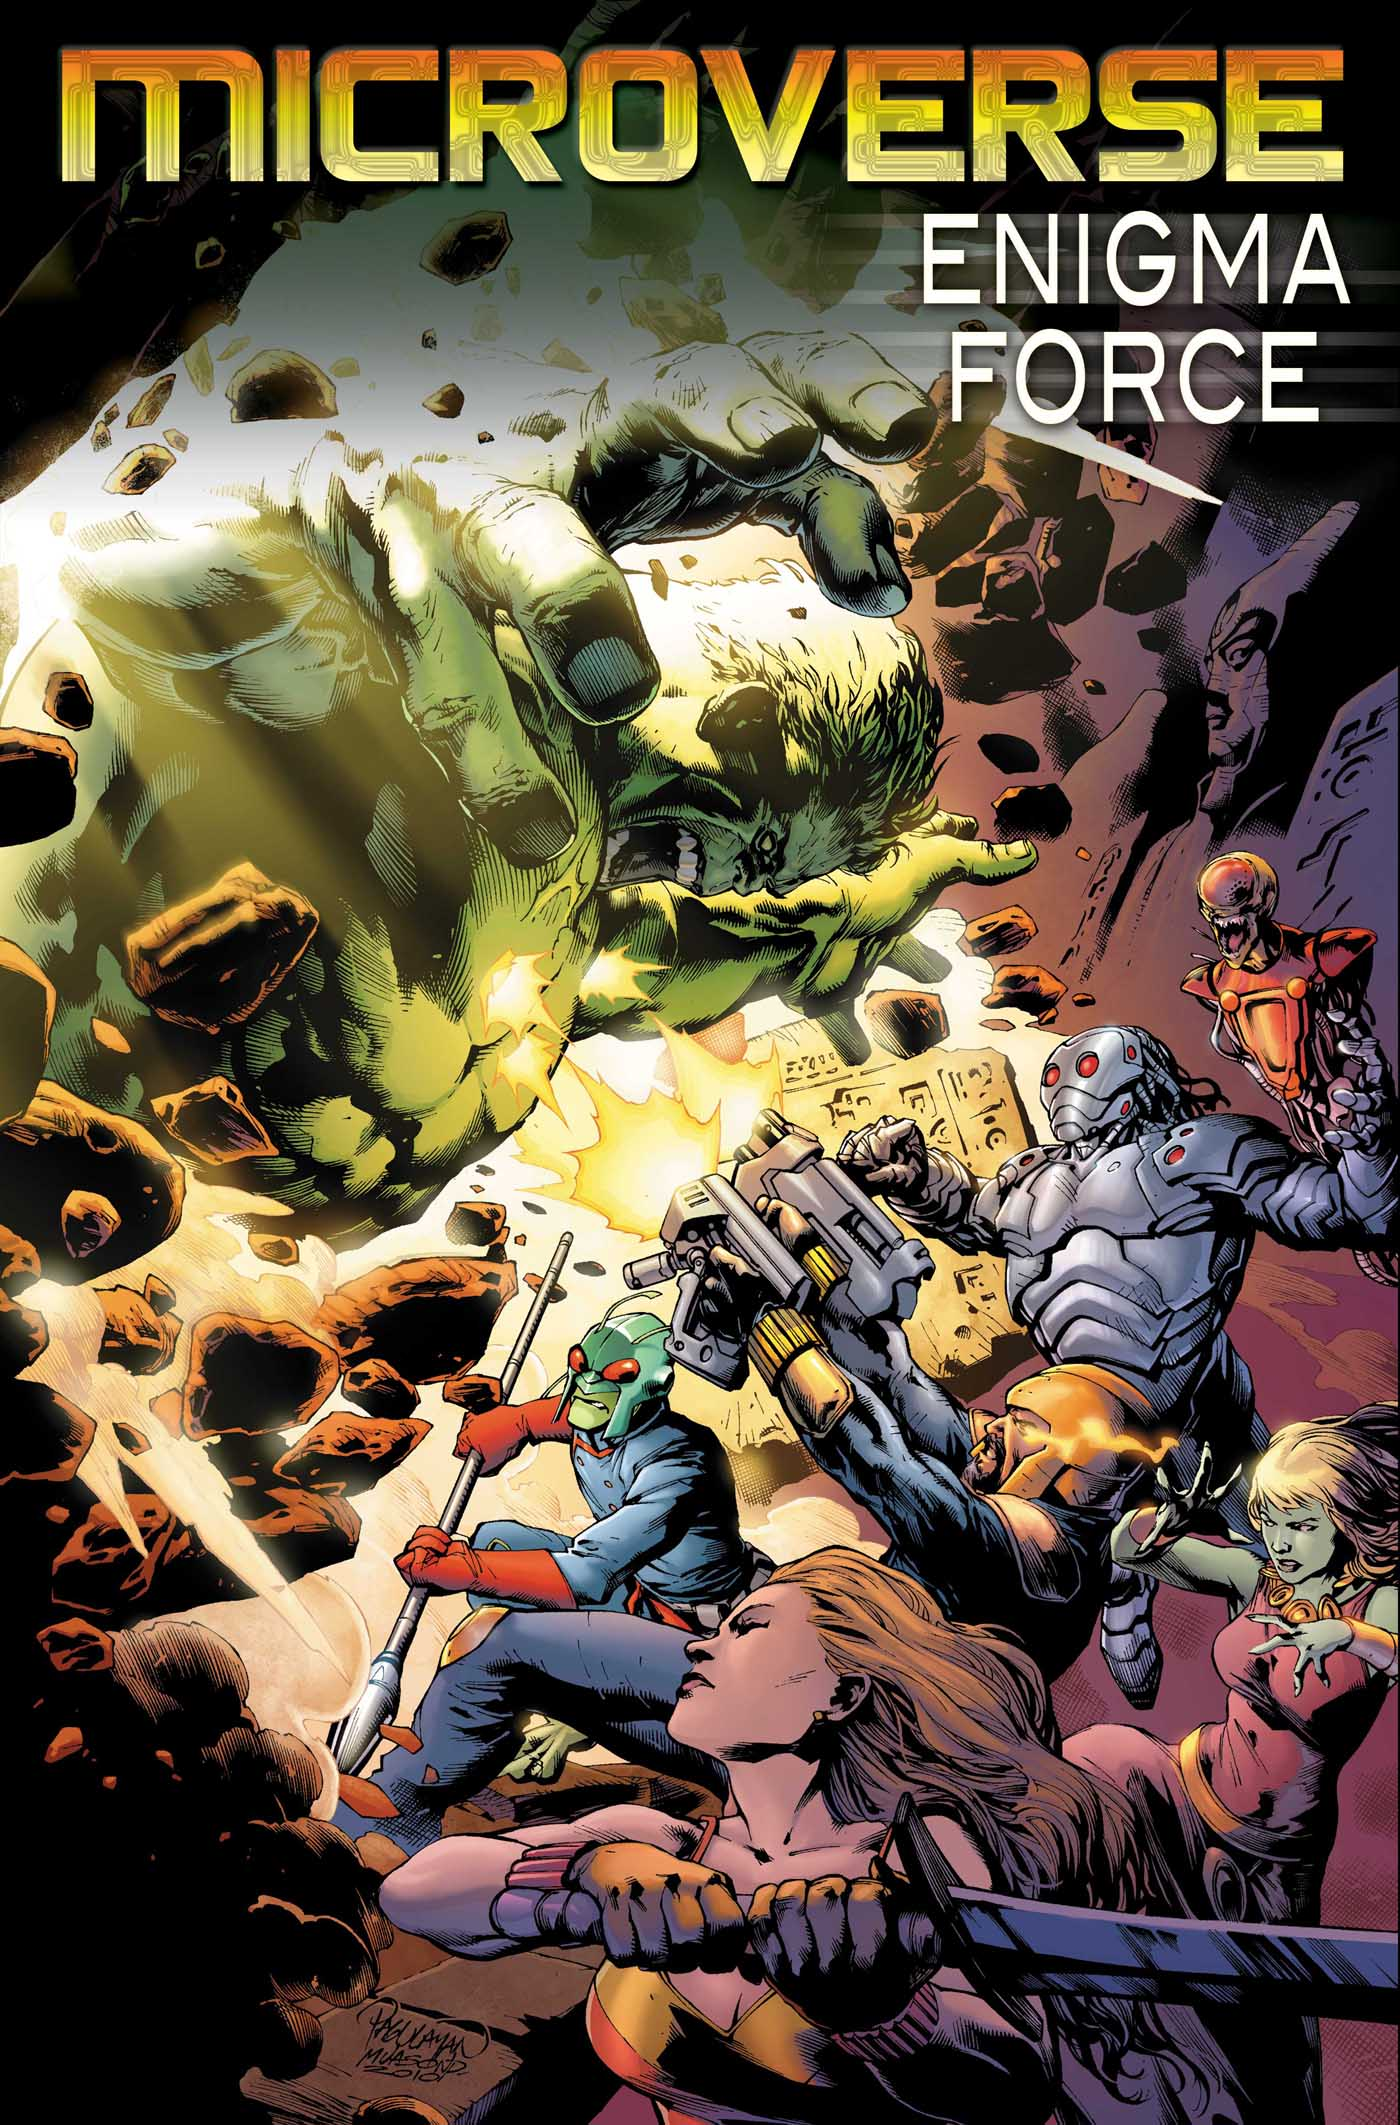 Microverse: Enigma Force (2010) #3